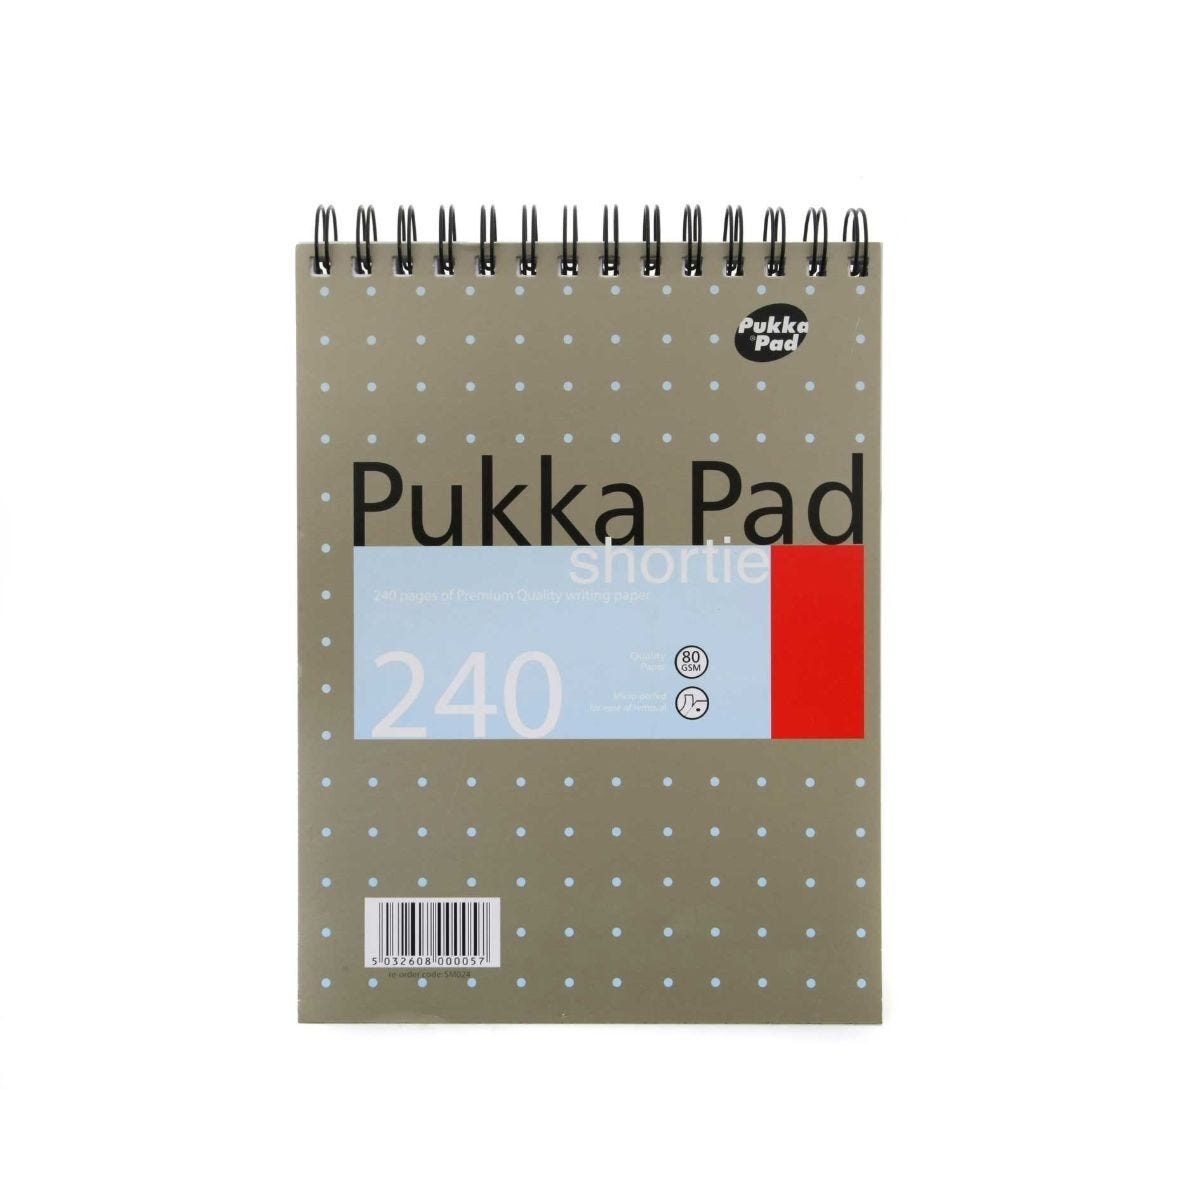 Pukka Pad Shortie Ruled Perforated 80gsm 240 Pages Pack of 3